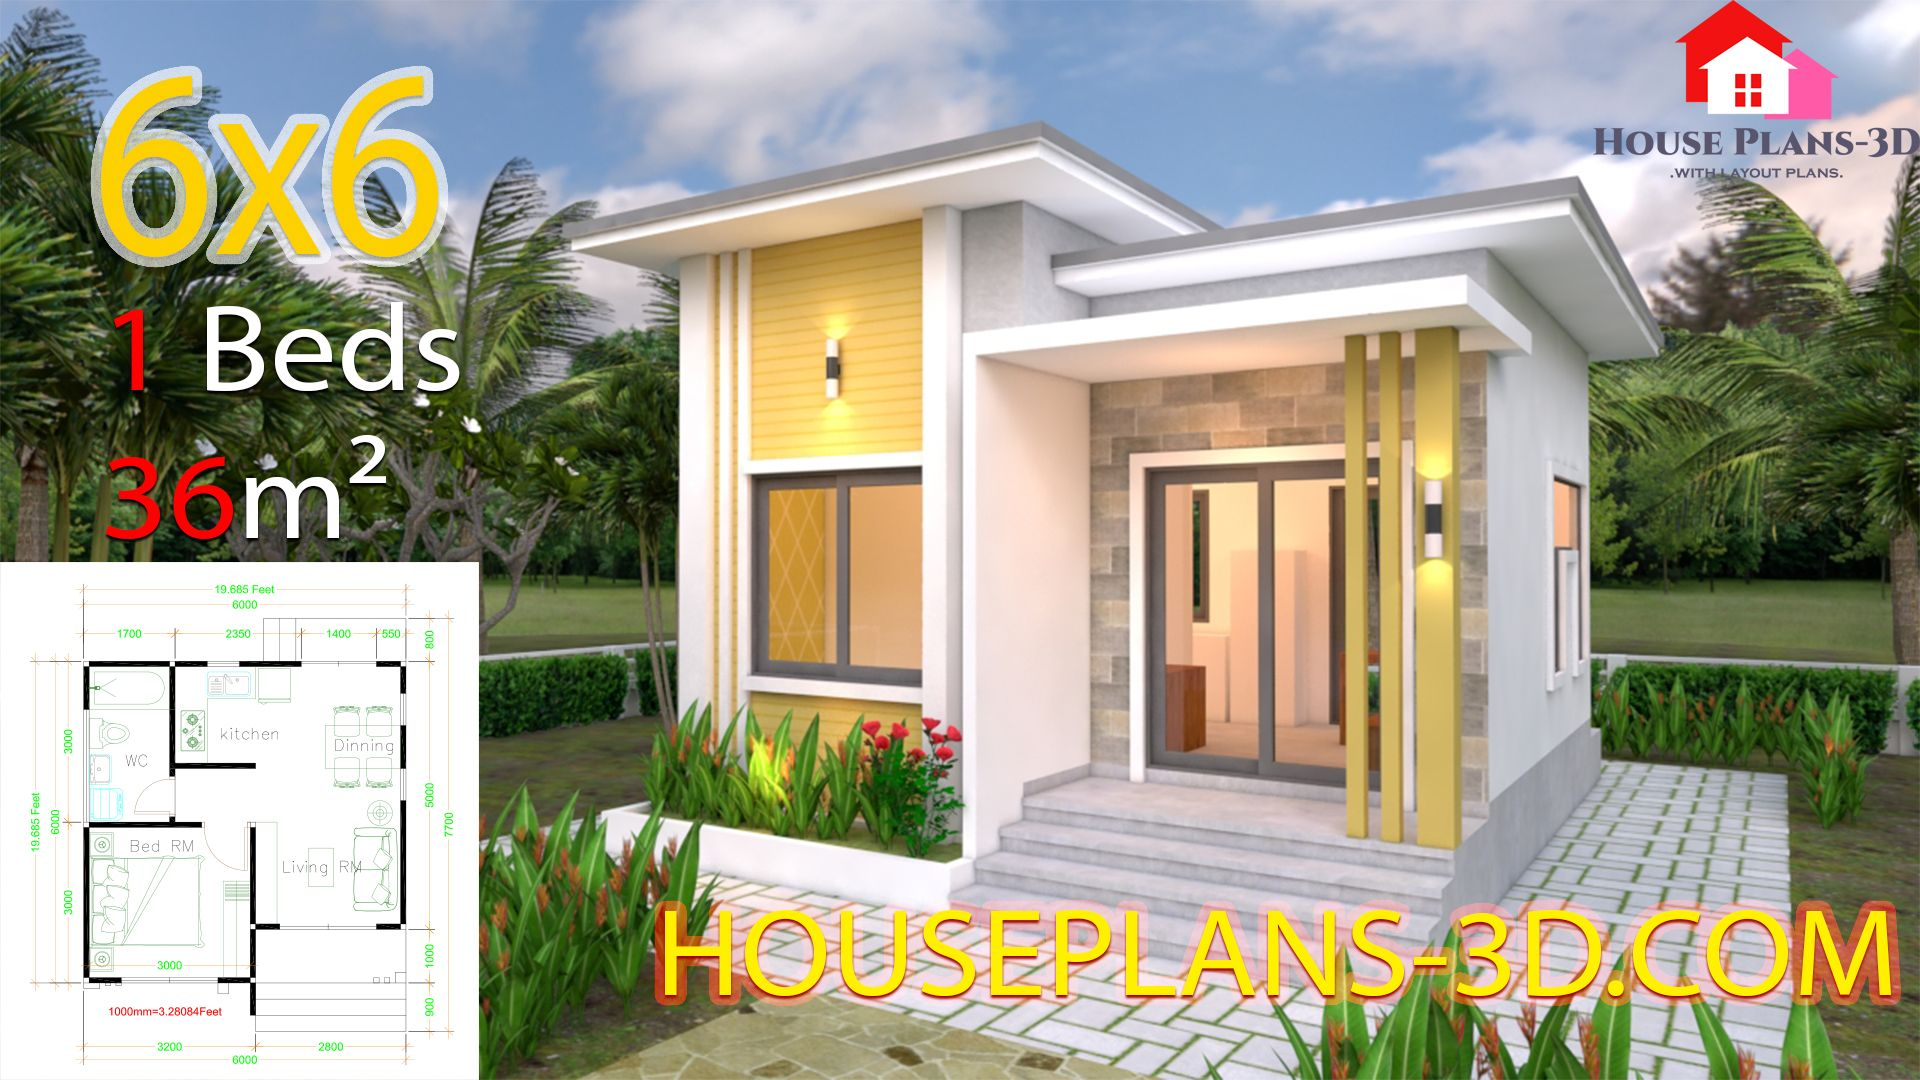 House Plans 6x6 With One Bedrooms Flat Roof The House Has Car Parking And Garden Living Room Dining Room Kitch In 2020 House Plans Flat Roof House Simple House Plans